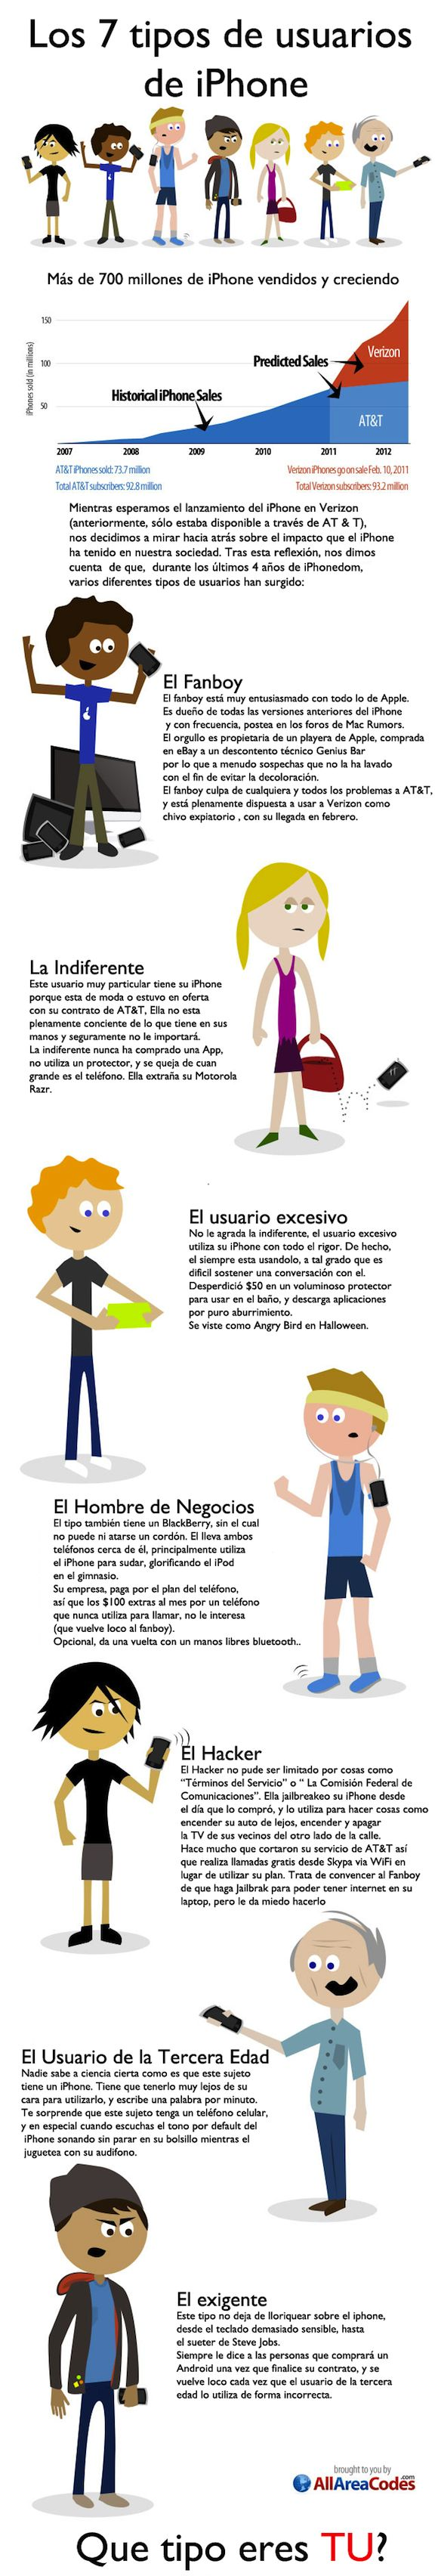 infografia iphone